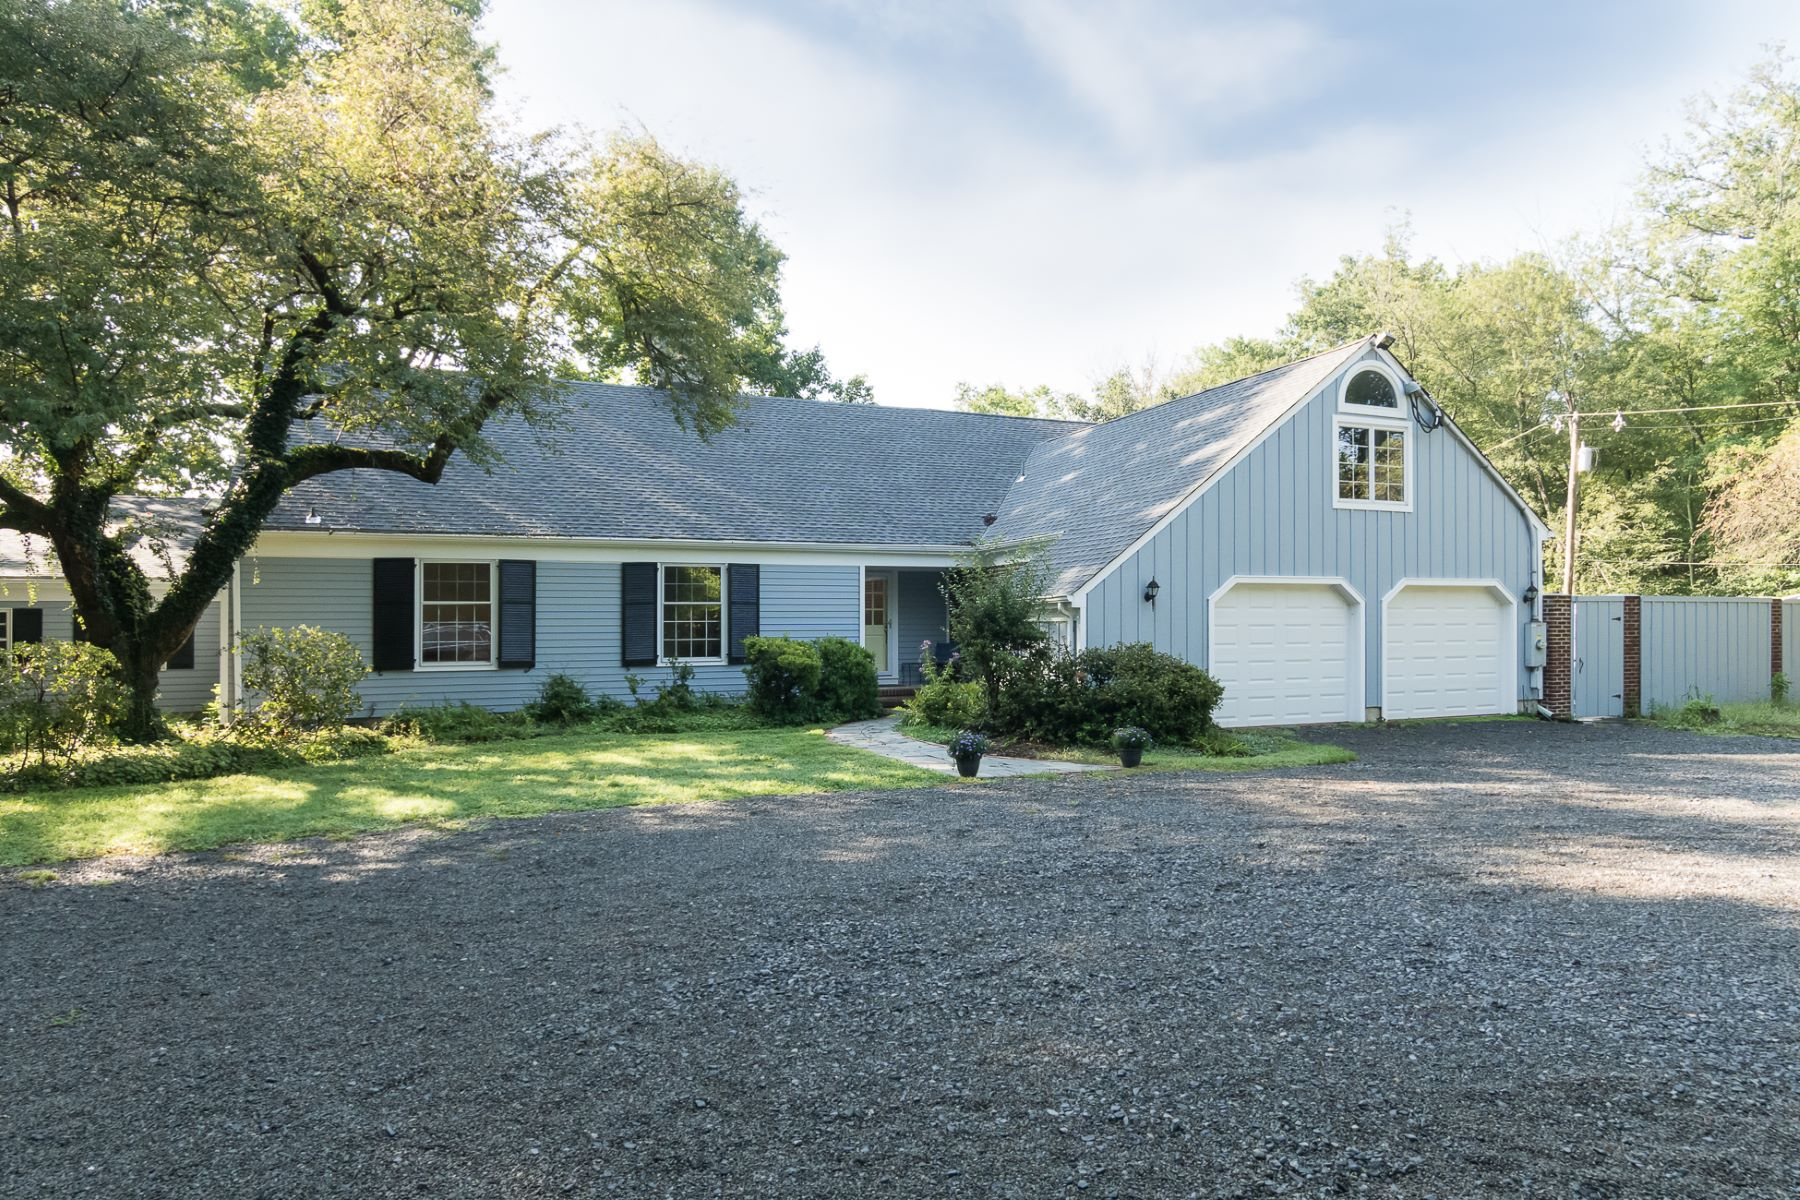 Single Family Homes for Sale at Large Princeton Colonial With Vistas of Open Land 1040 Mercer Road, Princeton, New Jersey 08540 United States